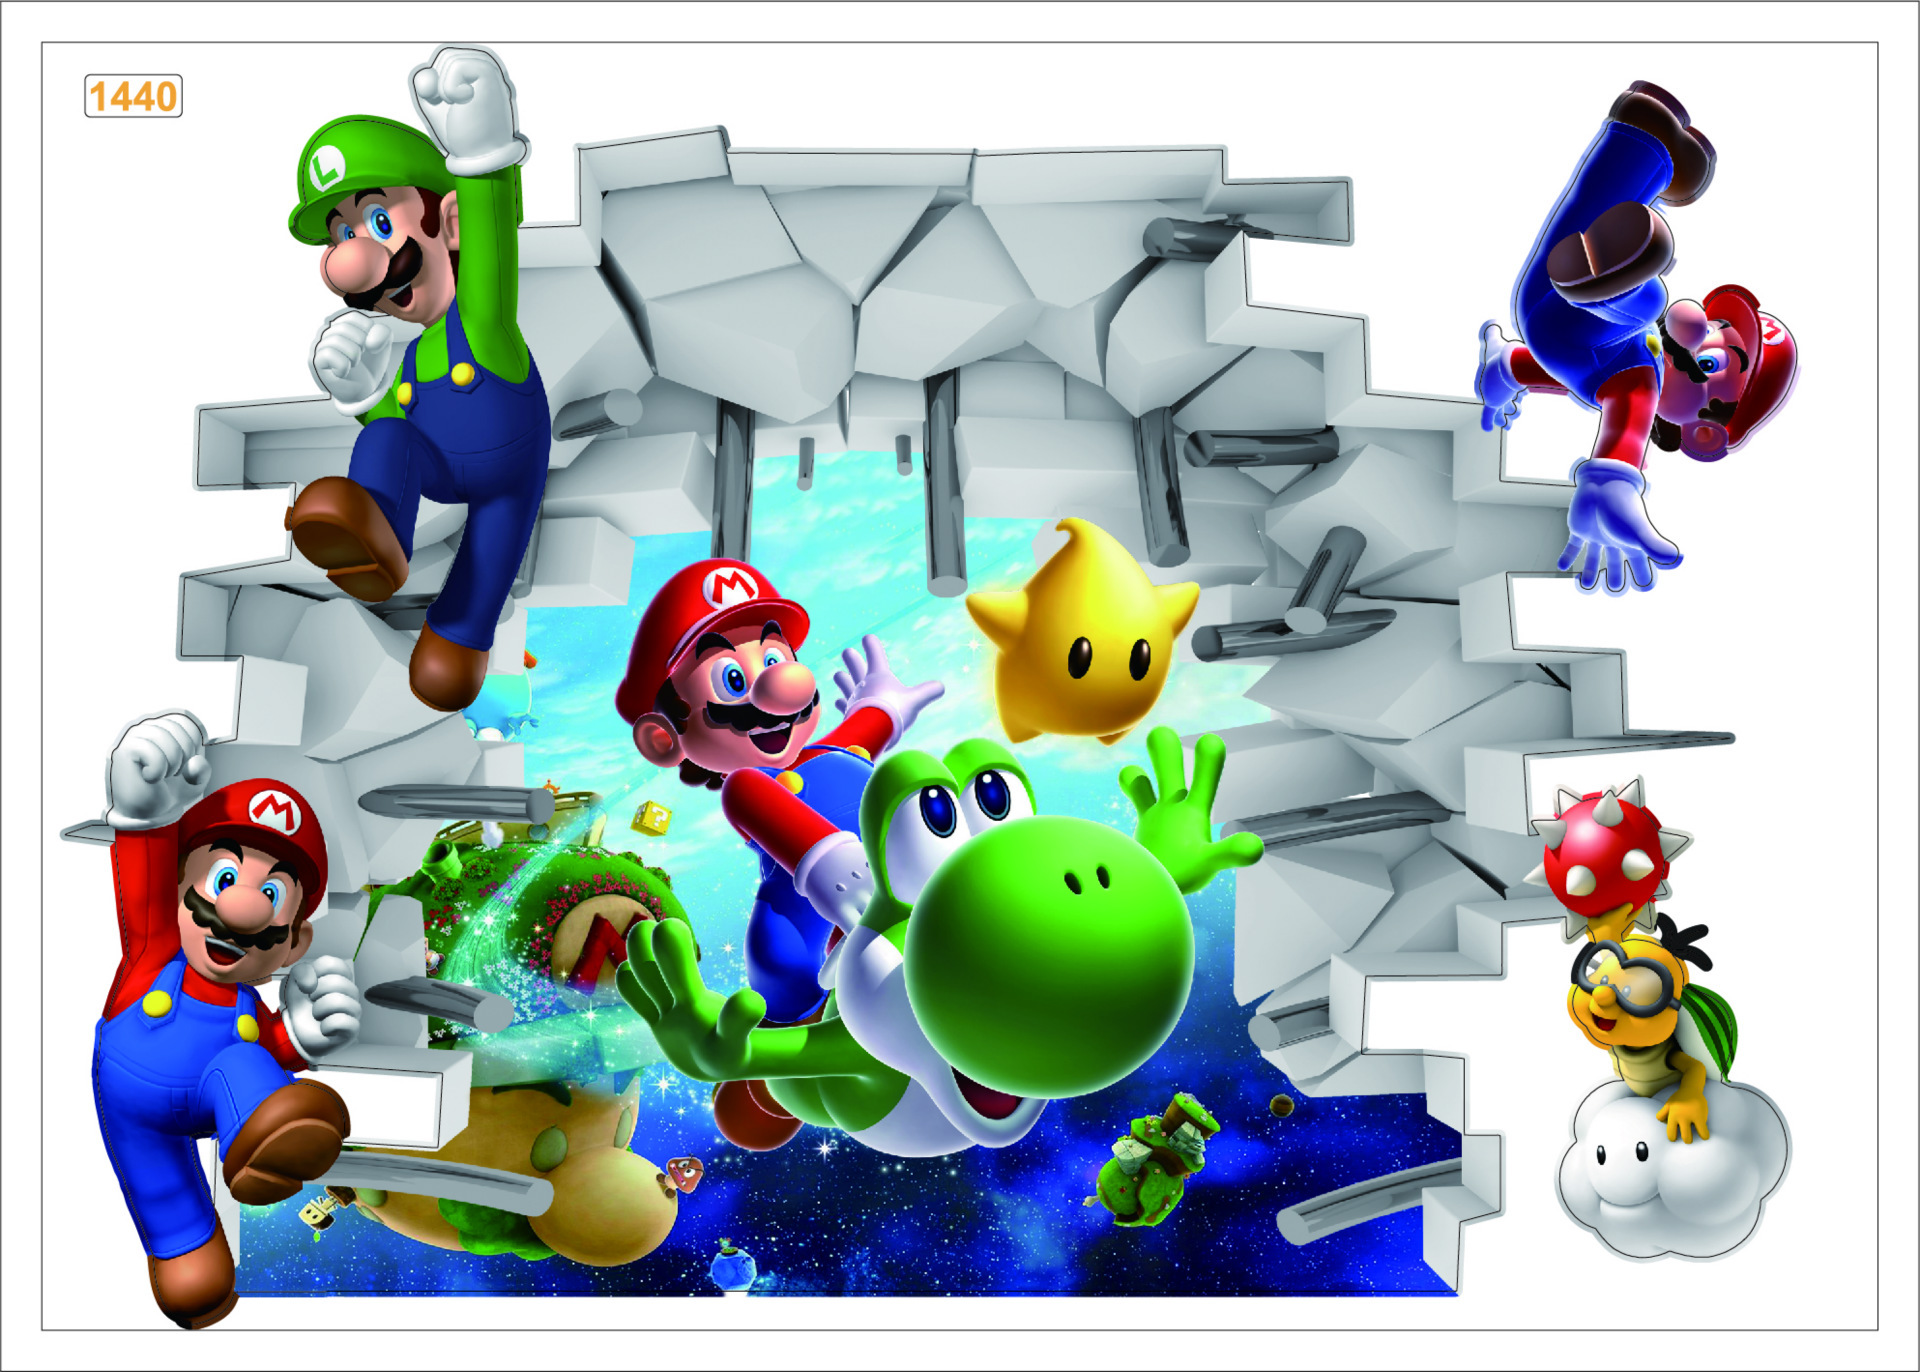 3d super mario wall stickers baby kid room wall decals removable undefined undefined use sticker wall amipublicfo Gallery